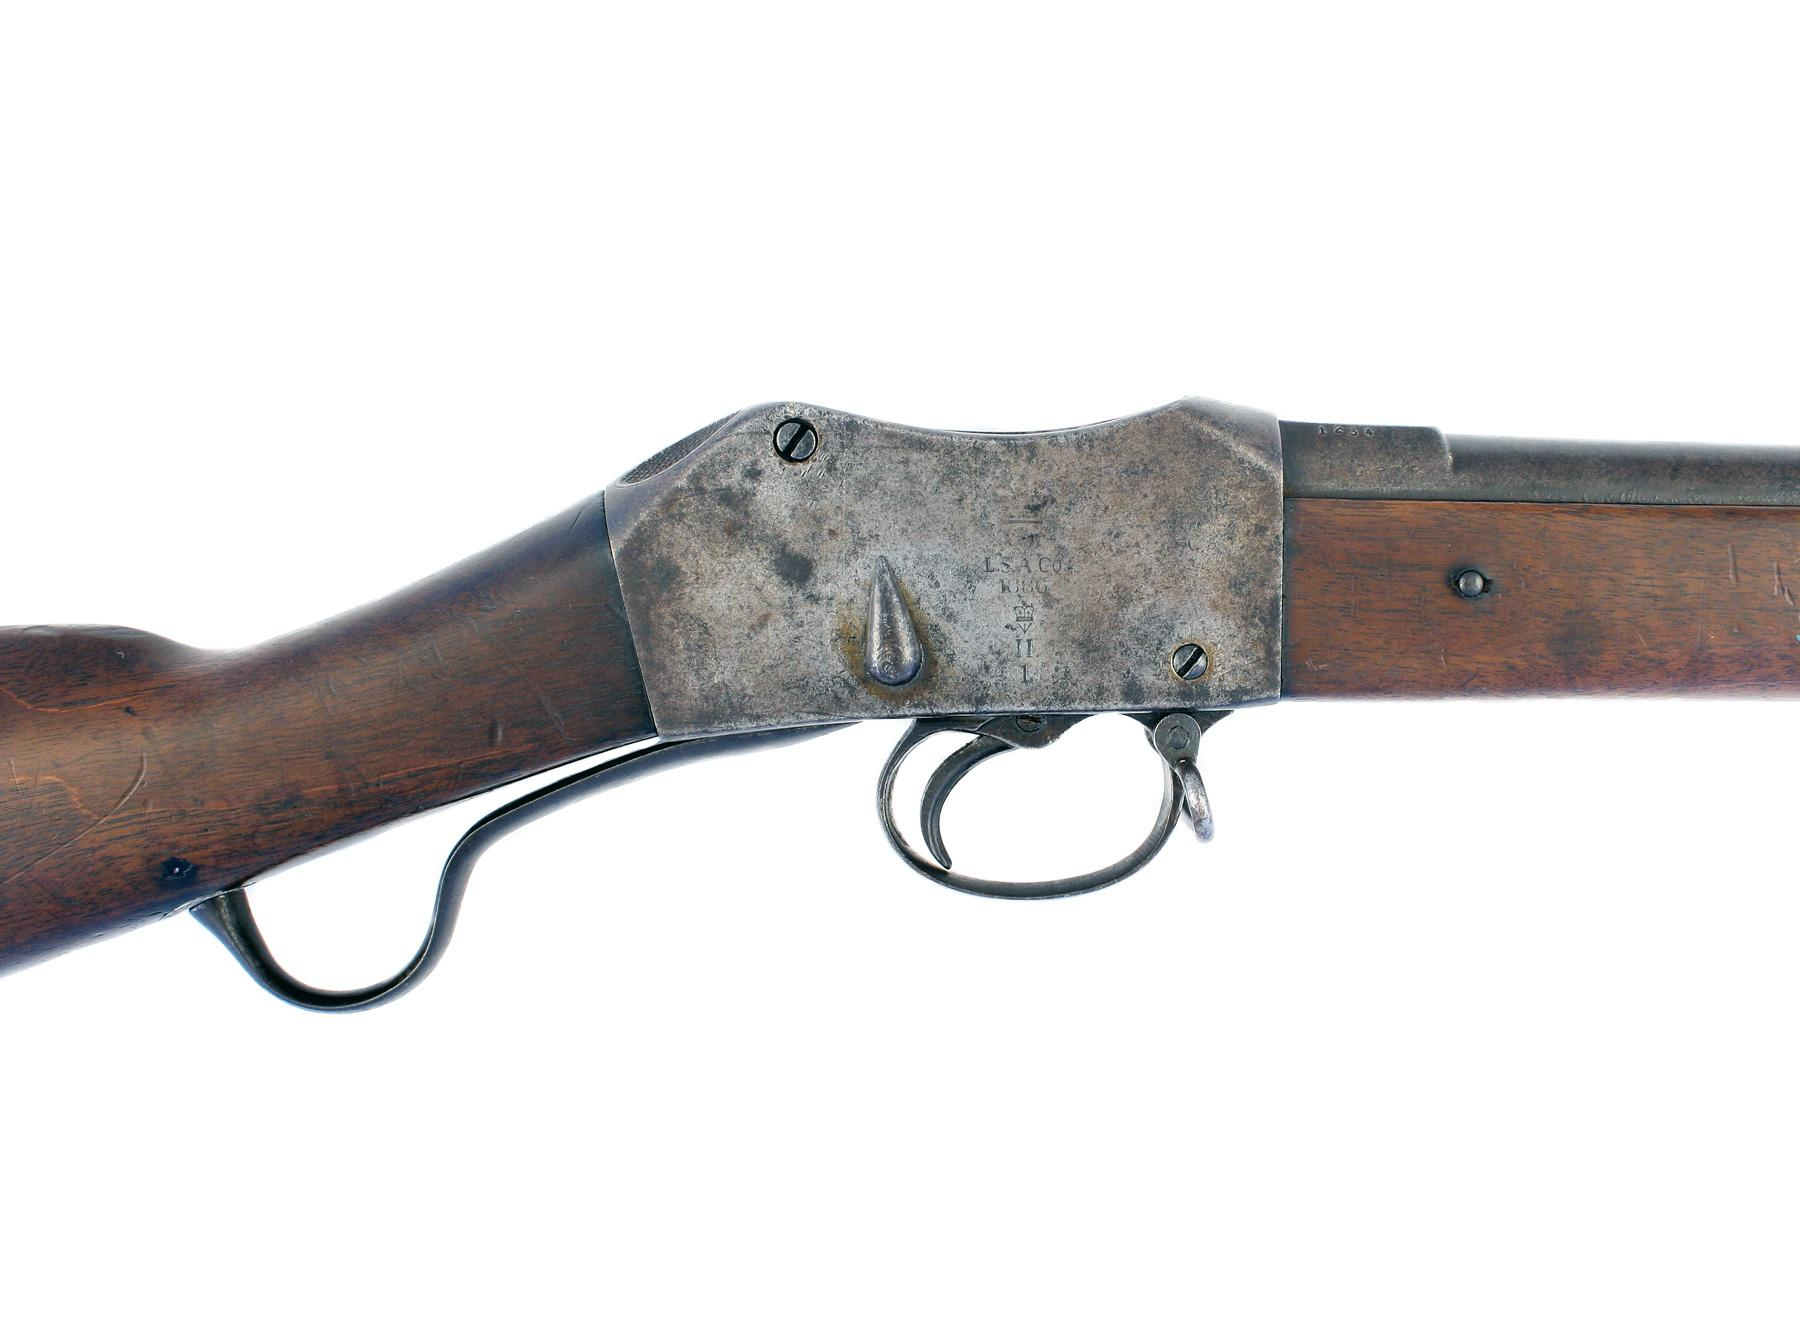 A Martini Henry